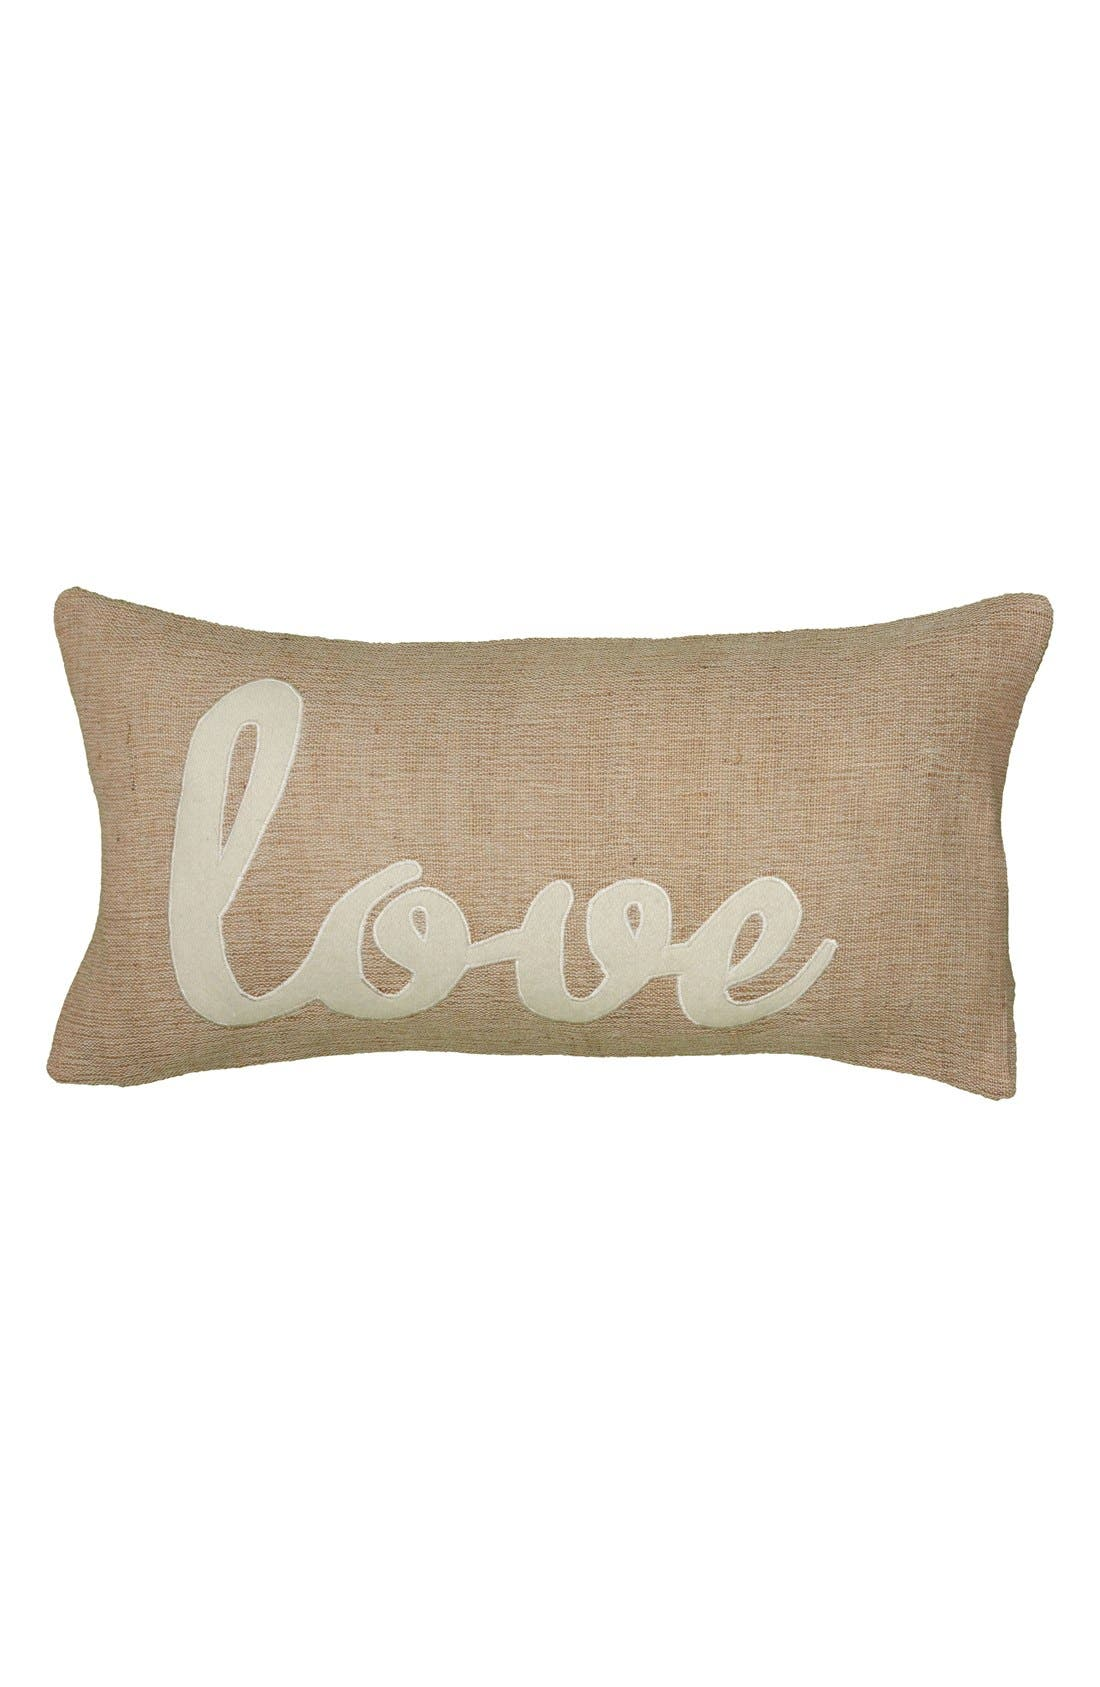 Main Image - Rizzy Home 'Love' Accent Pillow